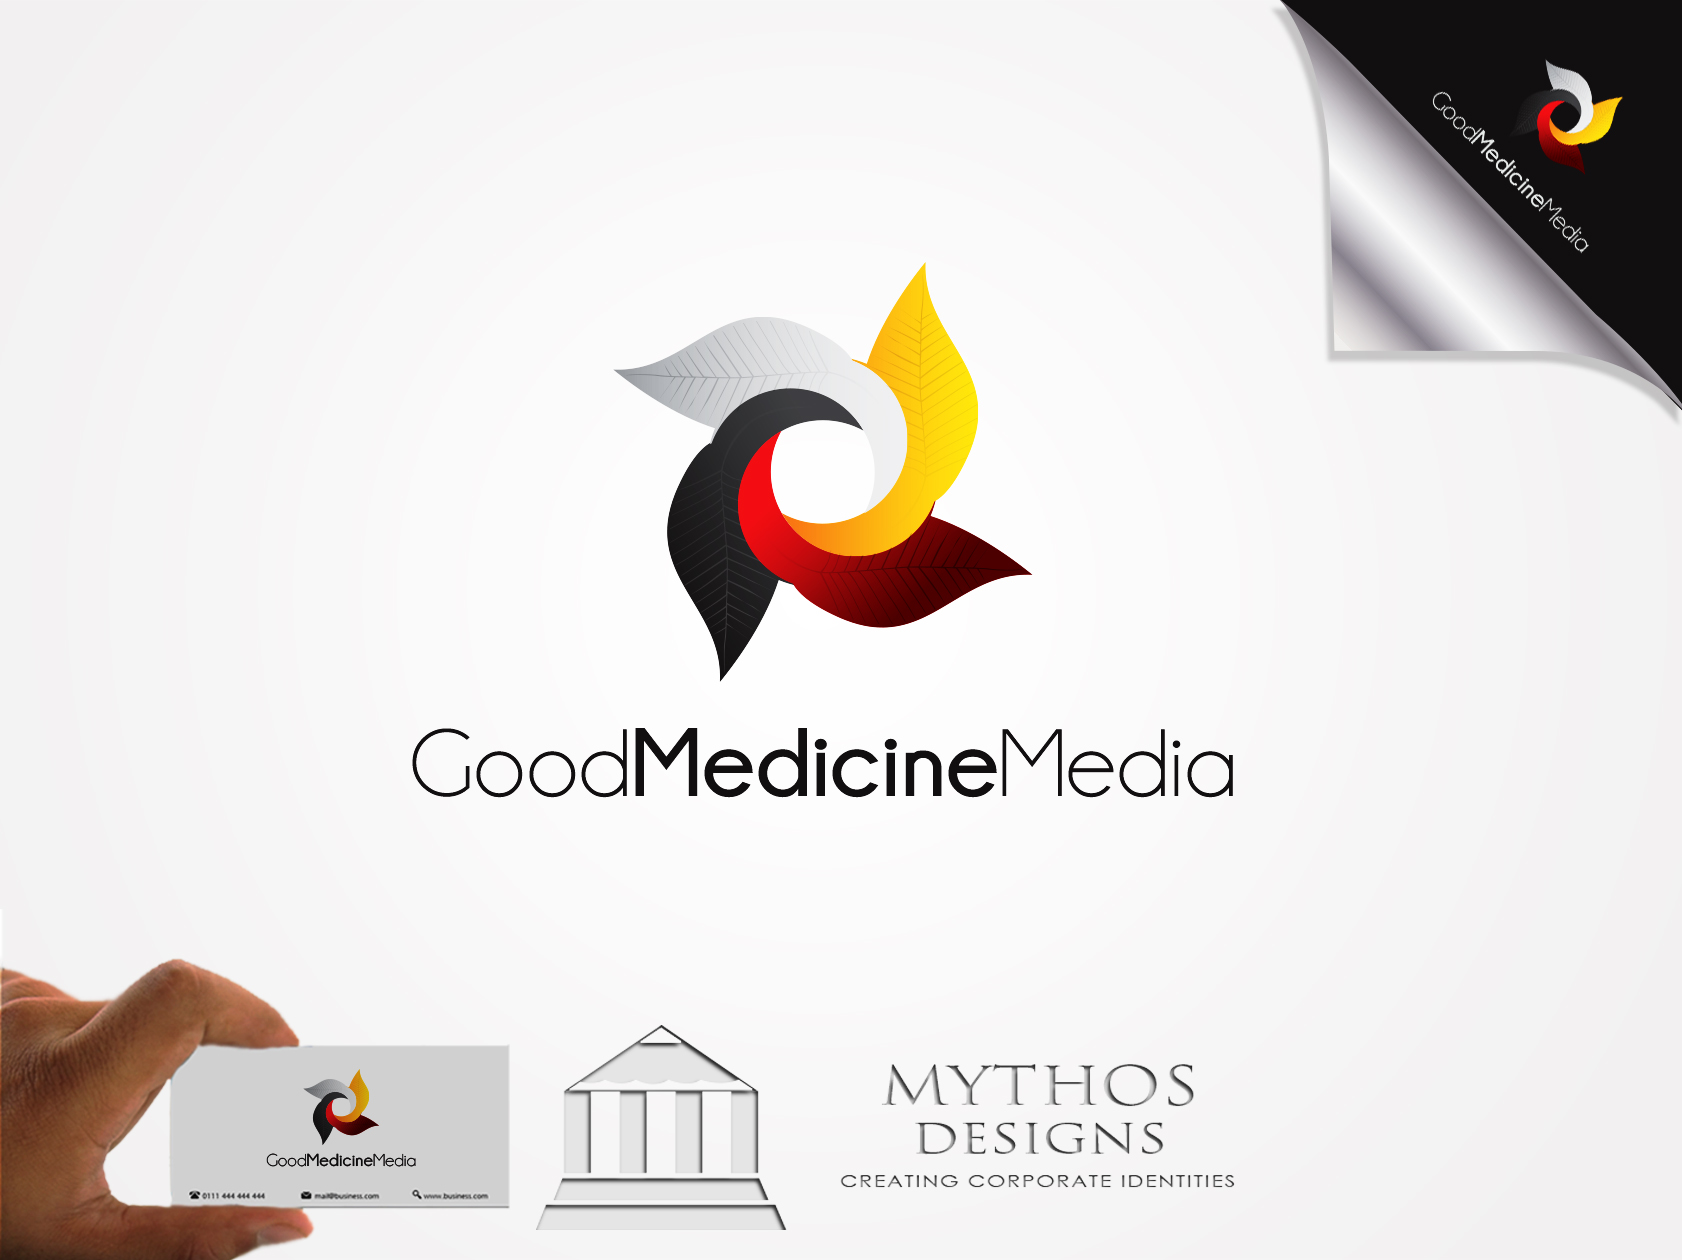 Logo Design by Mythos Designs - Entry No. 177 in the Logo Design Contest Good Medicine Media Logo Design.